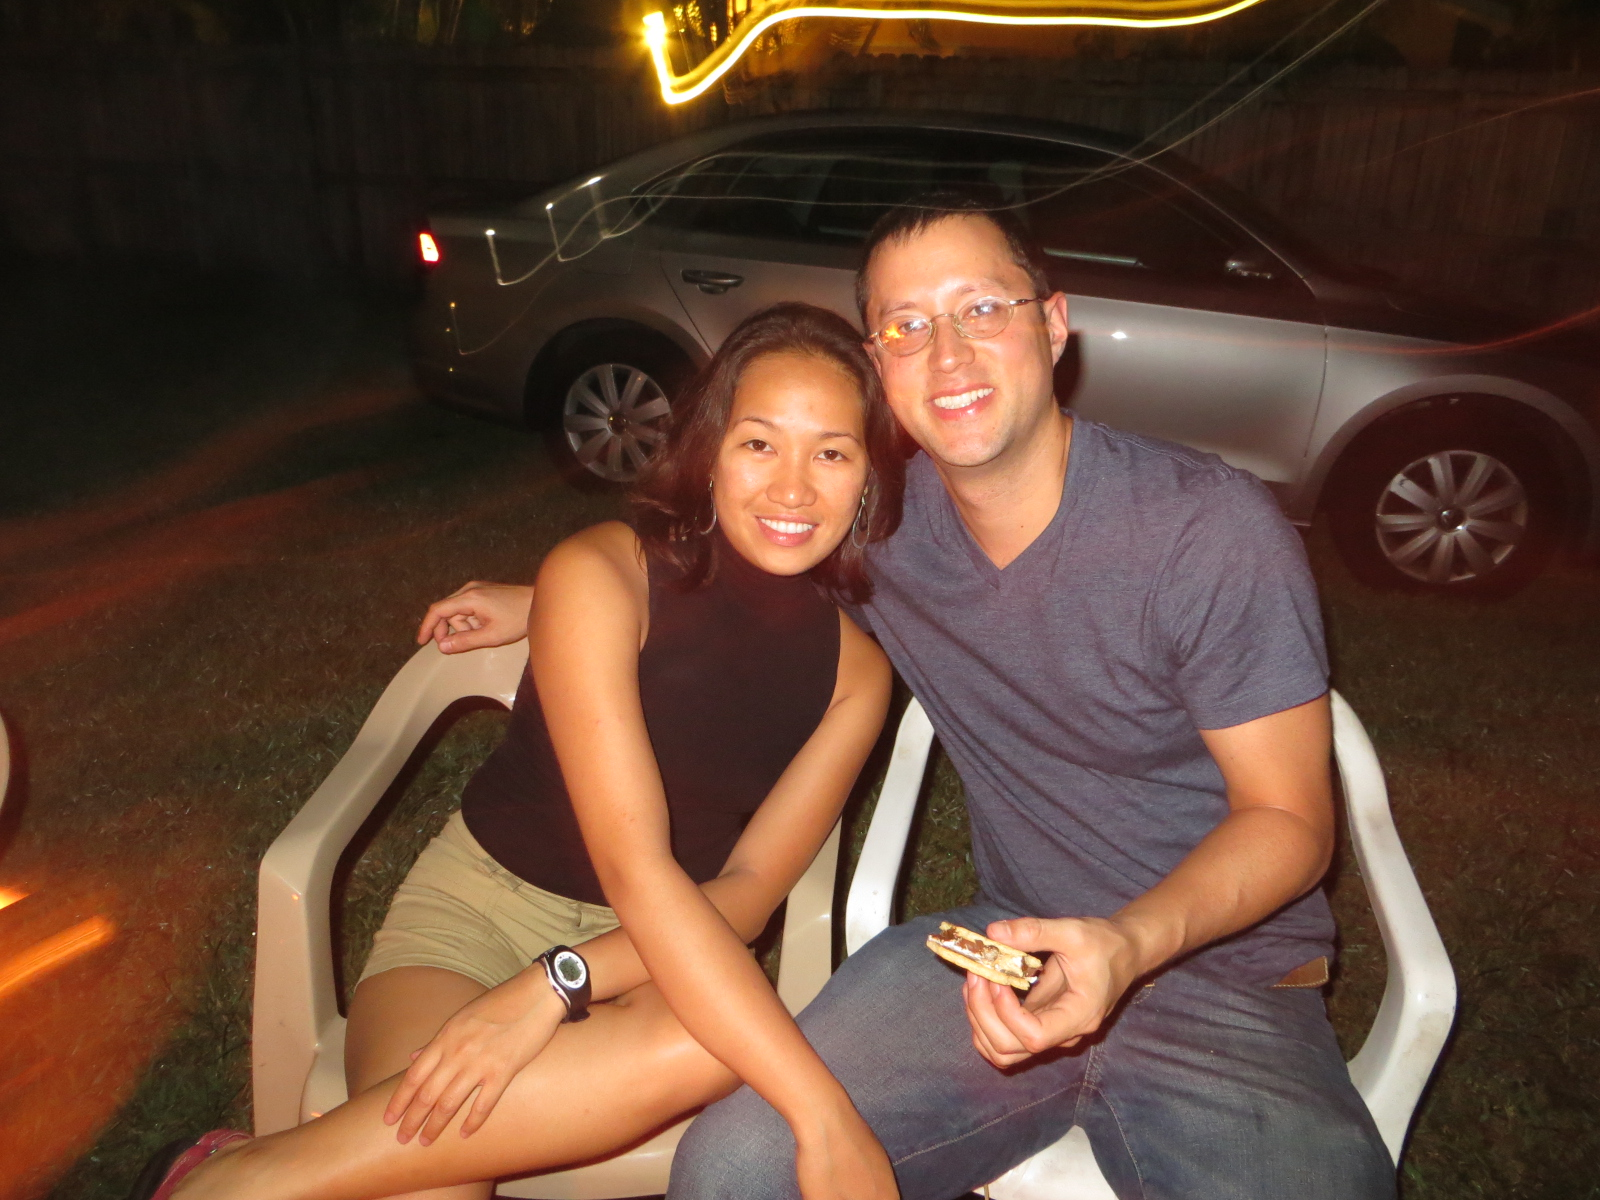 My asian girlfriend and my ex